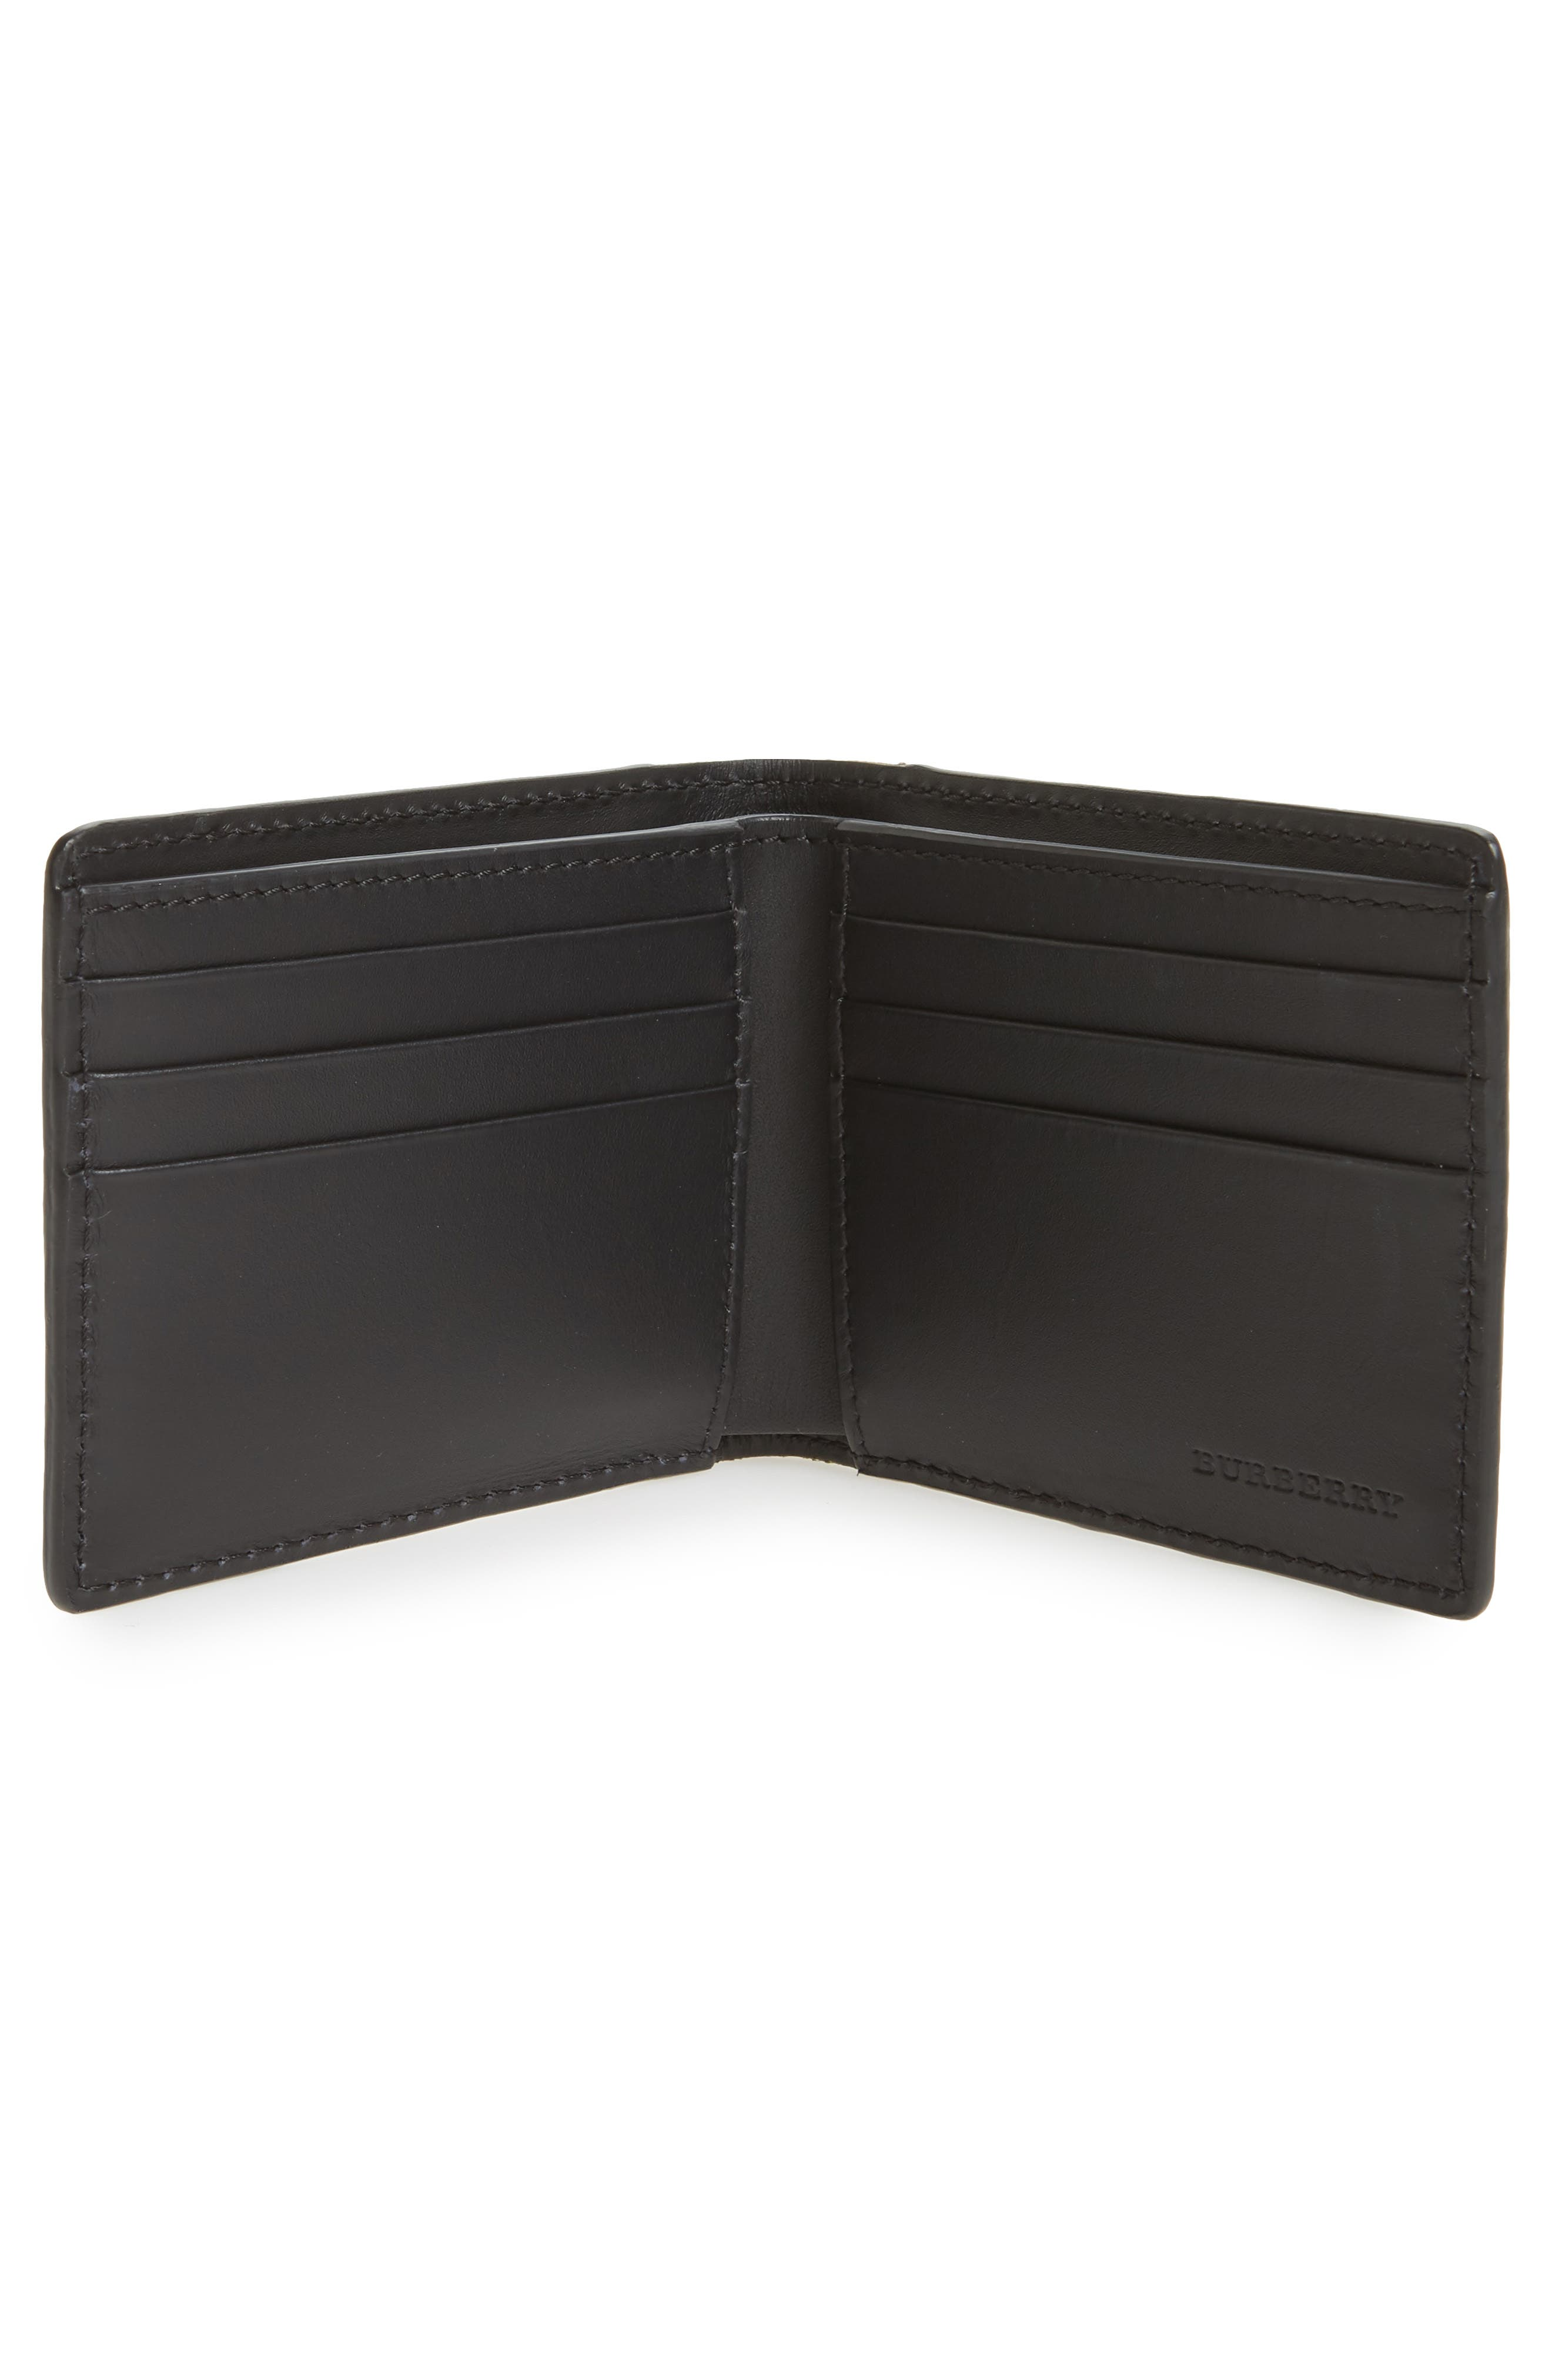 Check Leather Wallet,                             Alternate thumbnail 2, color,                             001